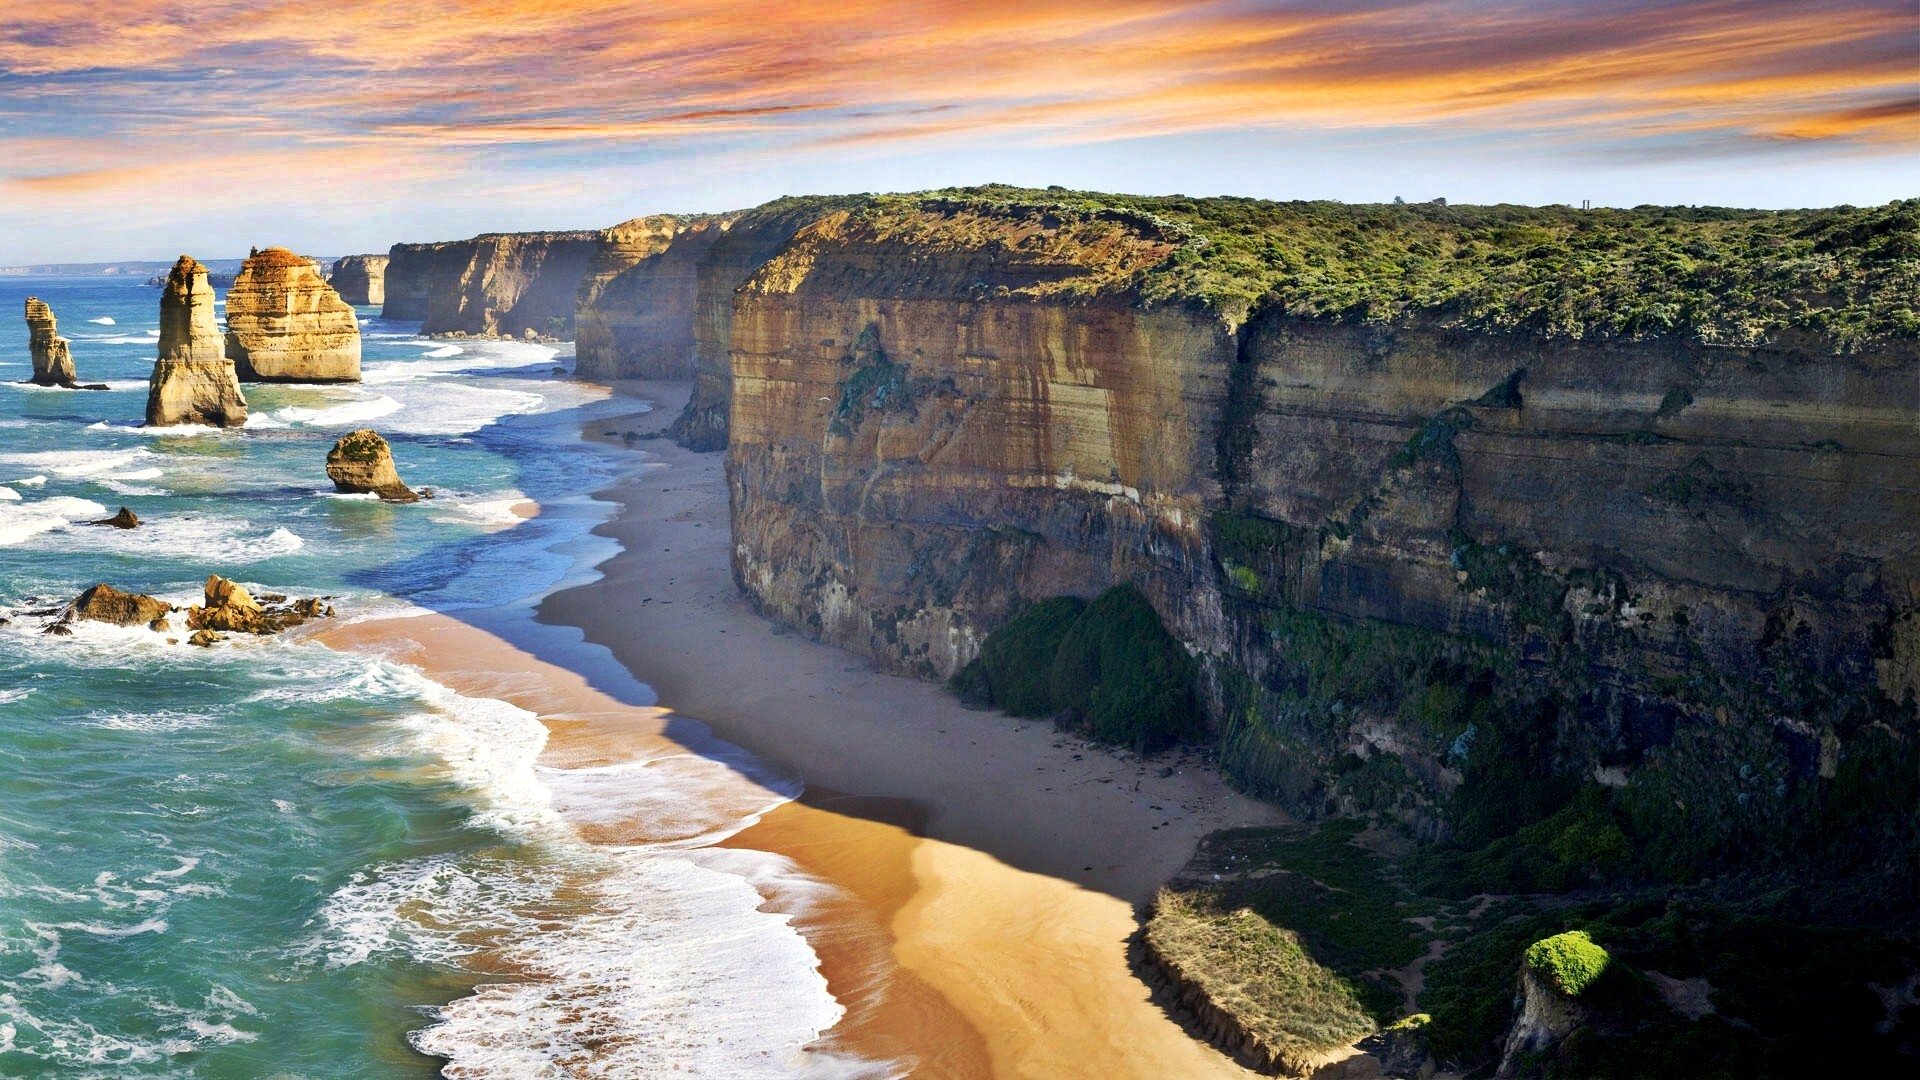 A Place For Free Hd Wallpapers: The Twelve Apostles Nature View In Victoria Australia